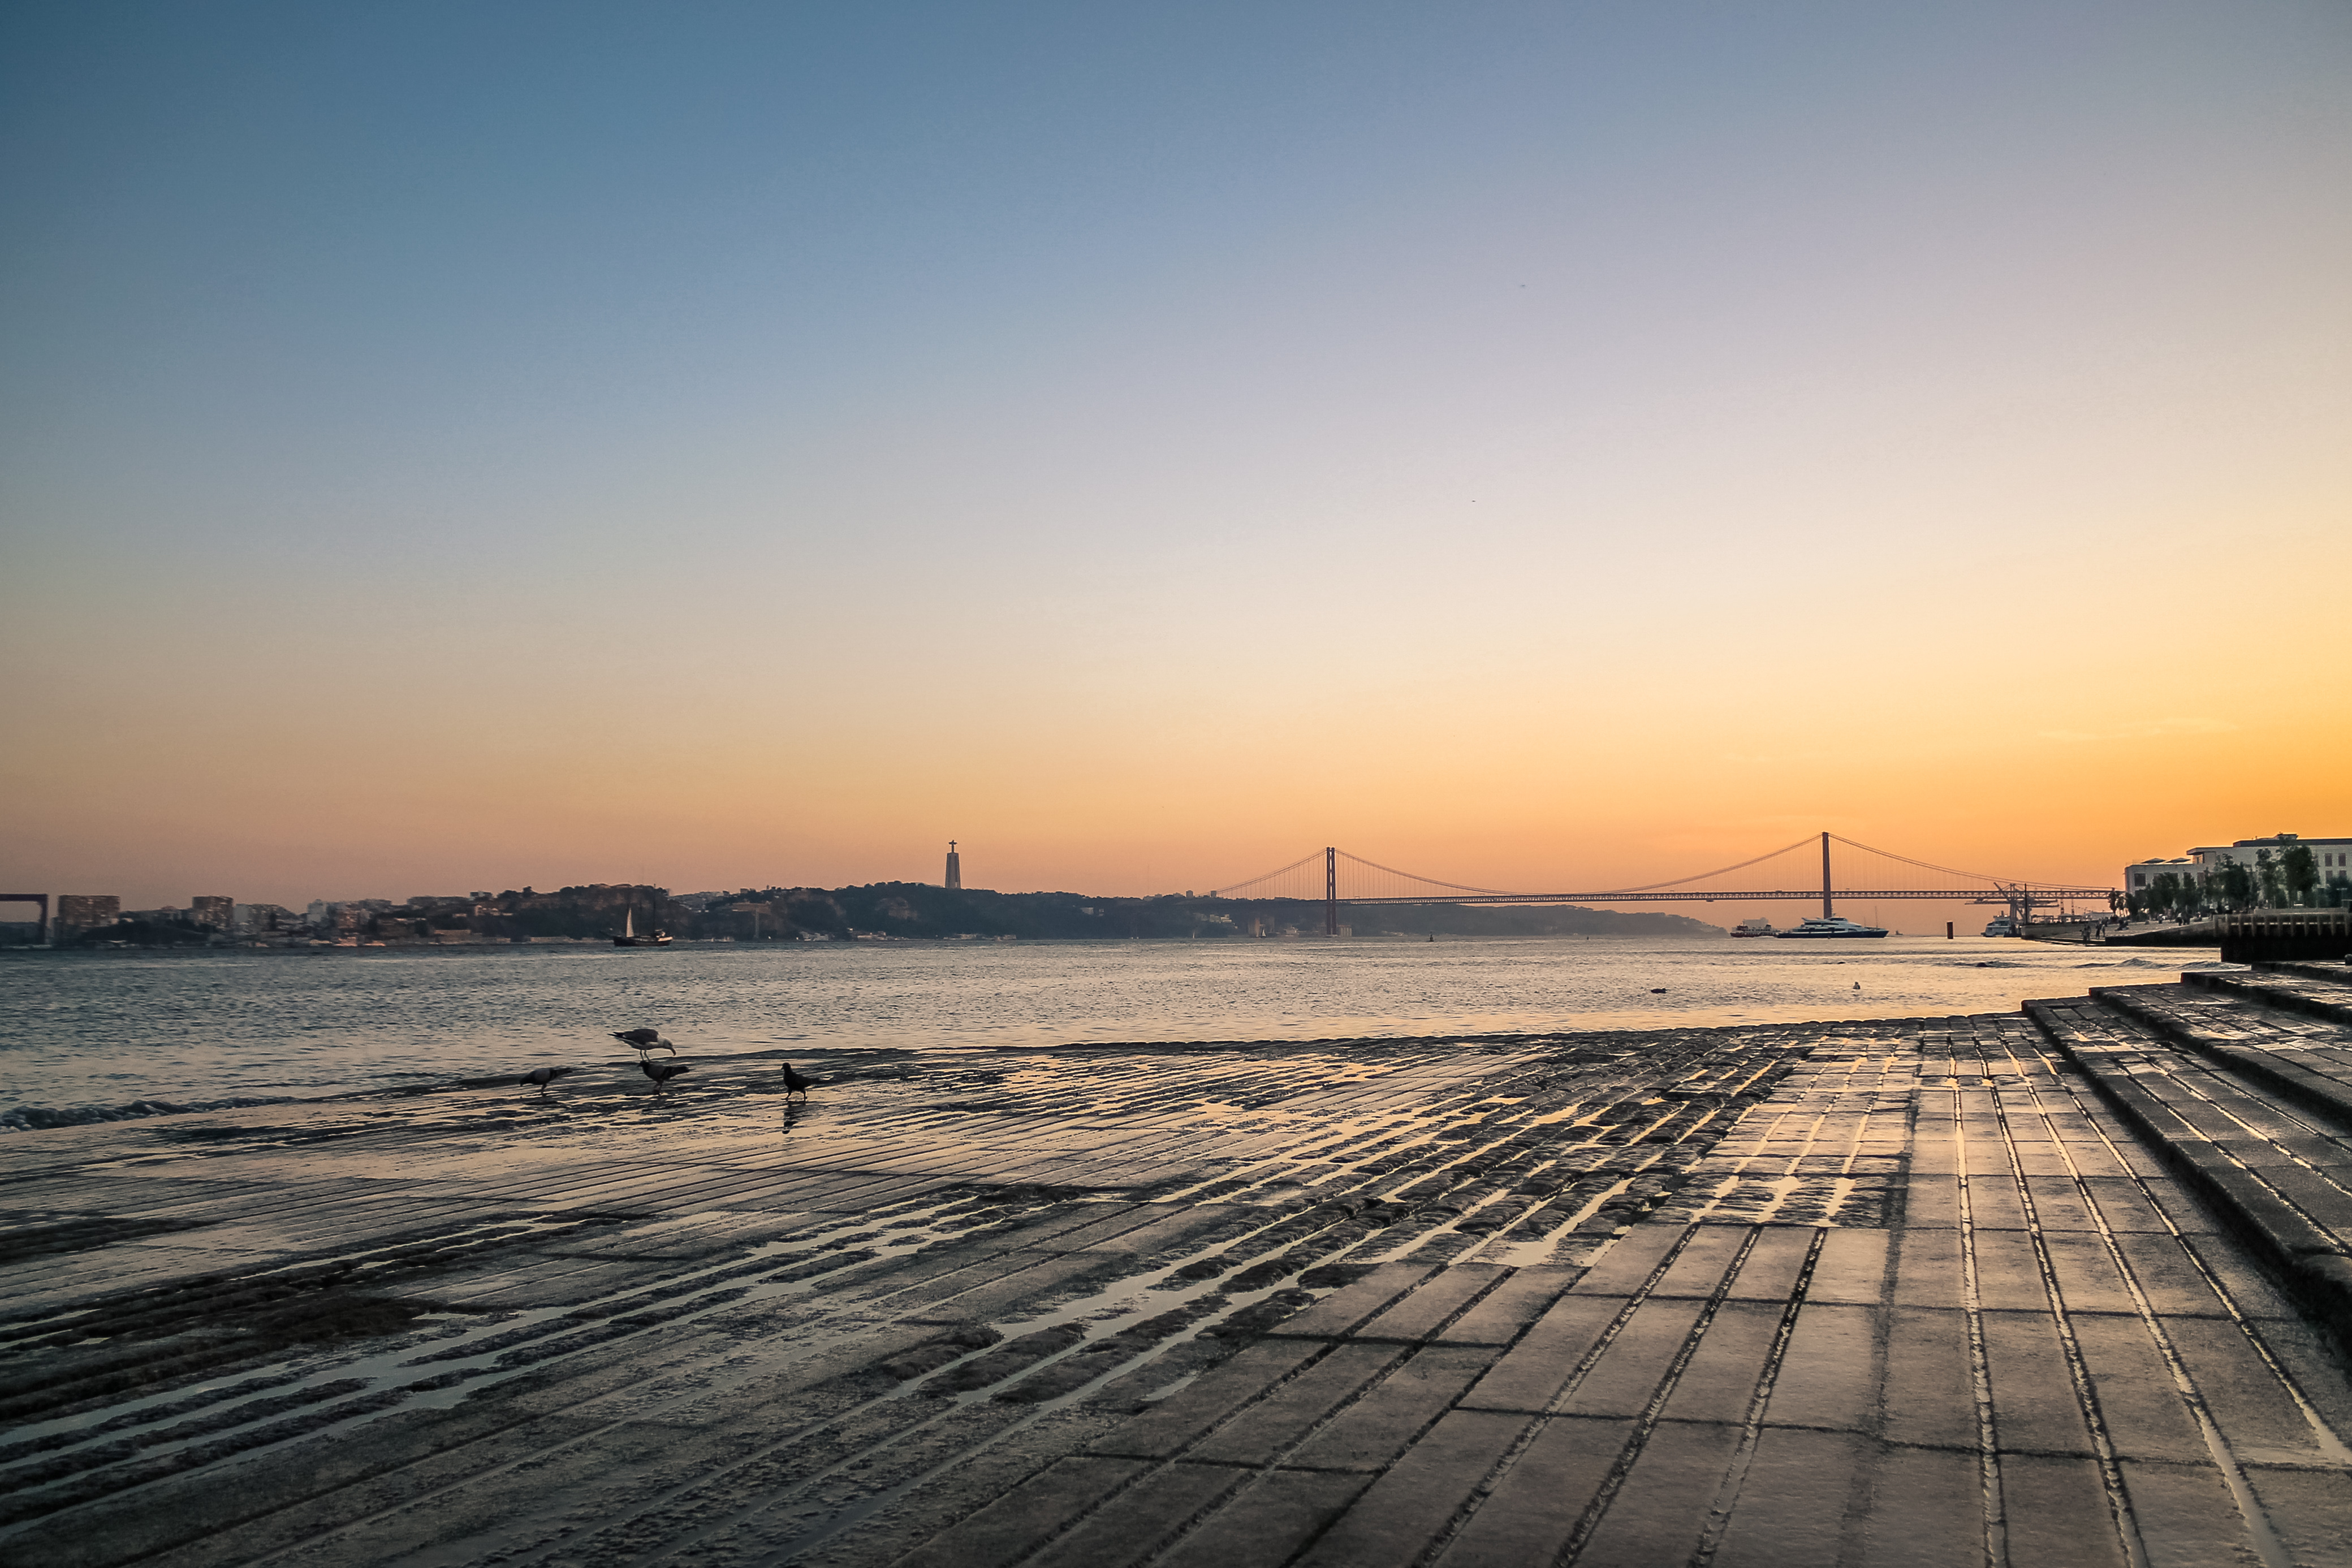 Lisbon river side at sunset, Sky, Outdoor, Portugal, Portuguese, HQ Photo